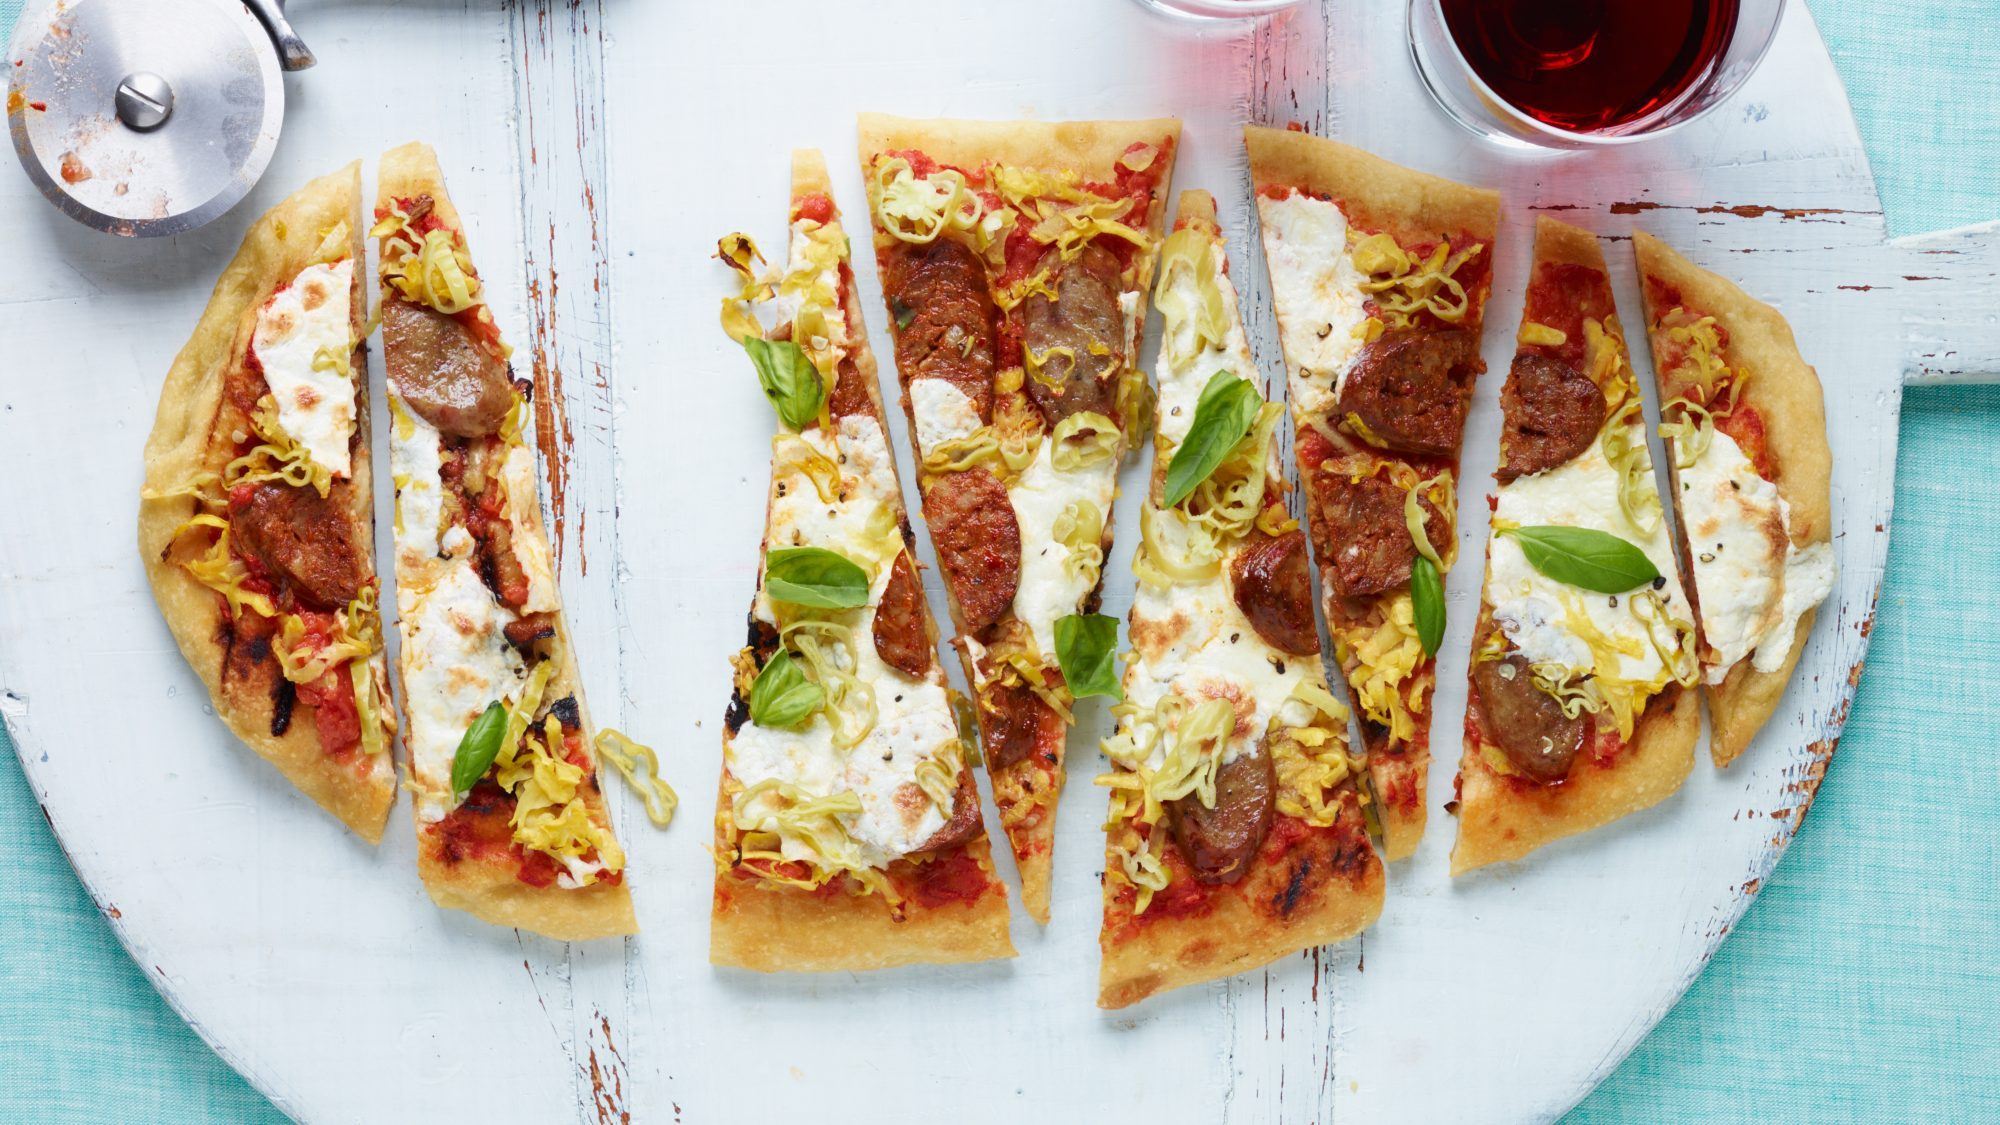 201308-FT-sausage-lovers-grilled-pizza.jpg